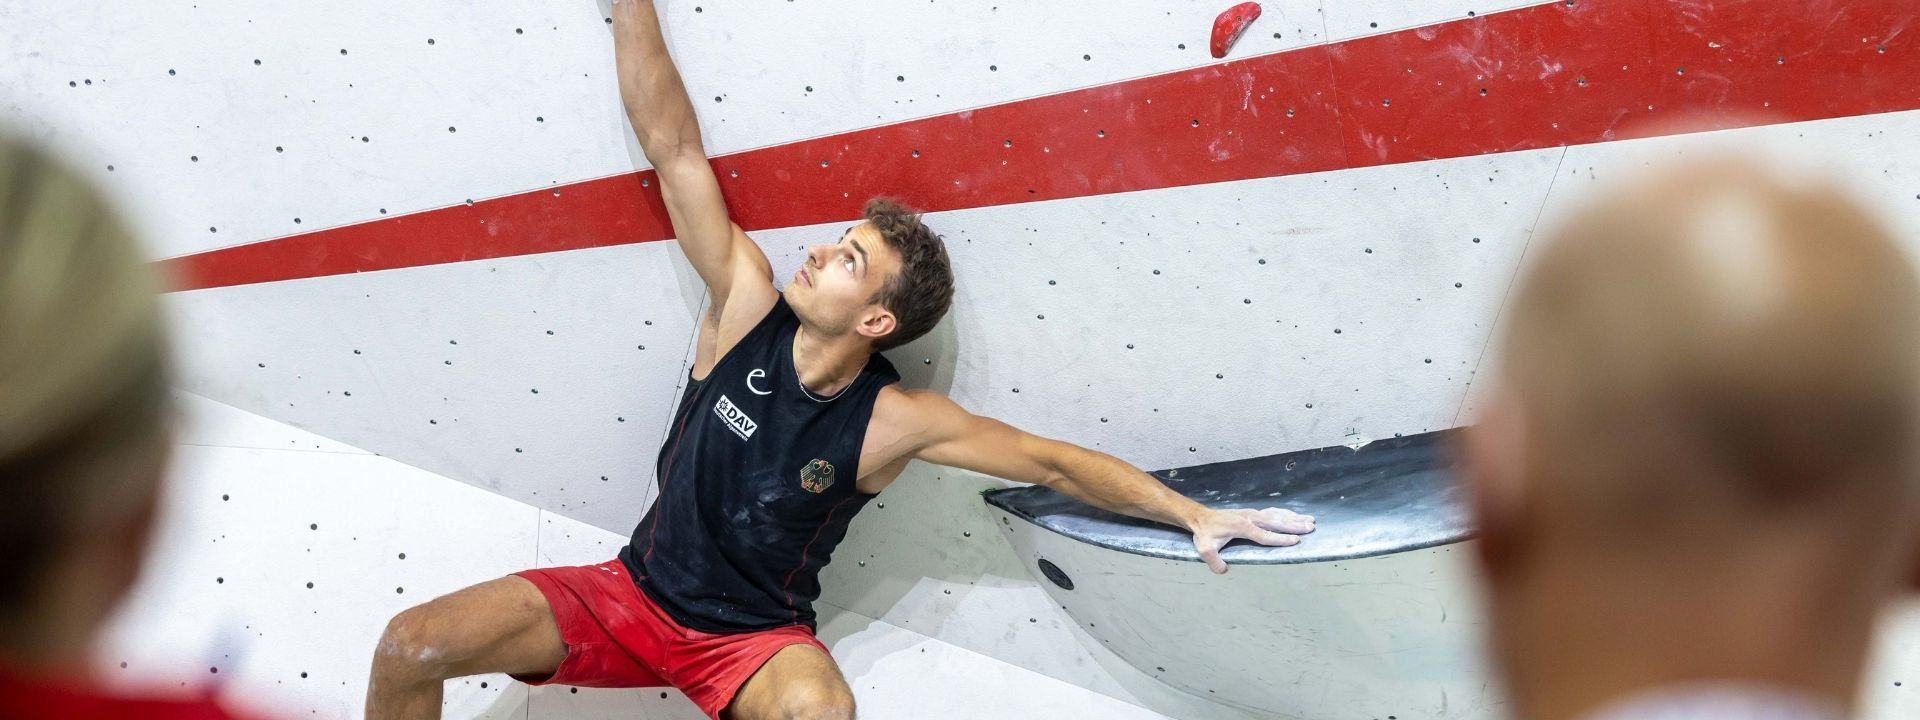 FLOHÉ AND FUJII TOP THE MEN'S BOULDER QUALIFICATION ROUND IN MOSCOW